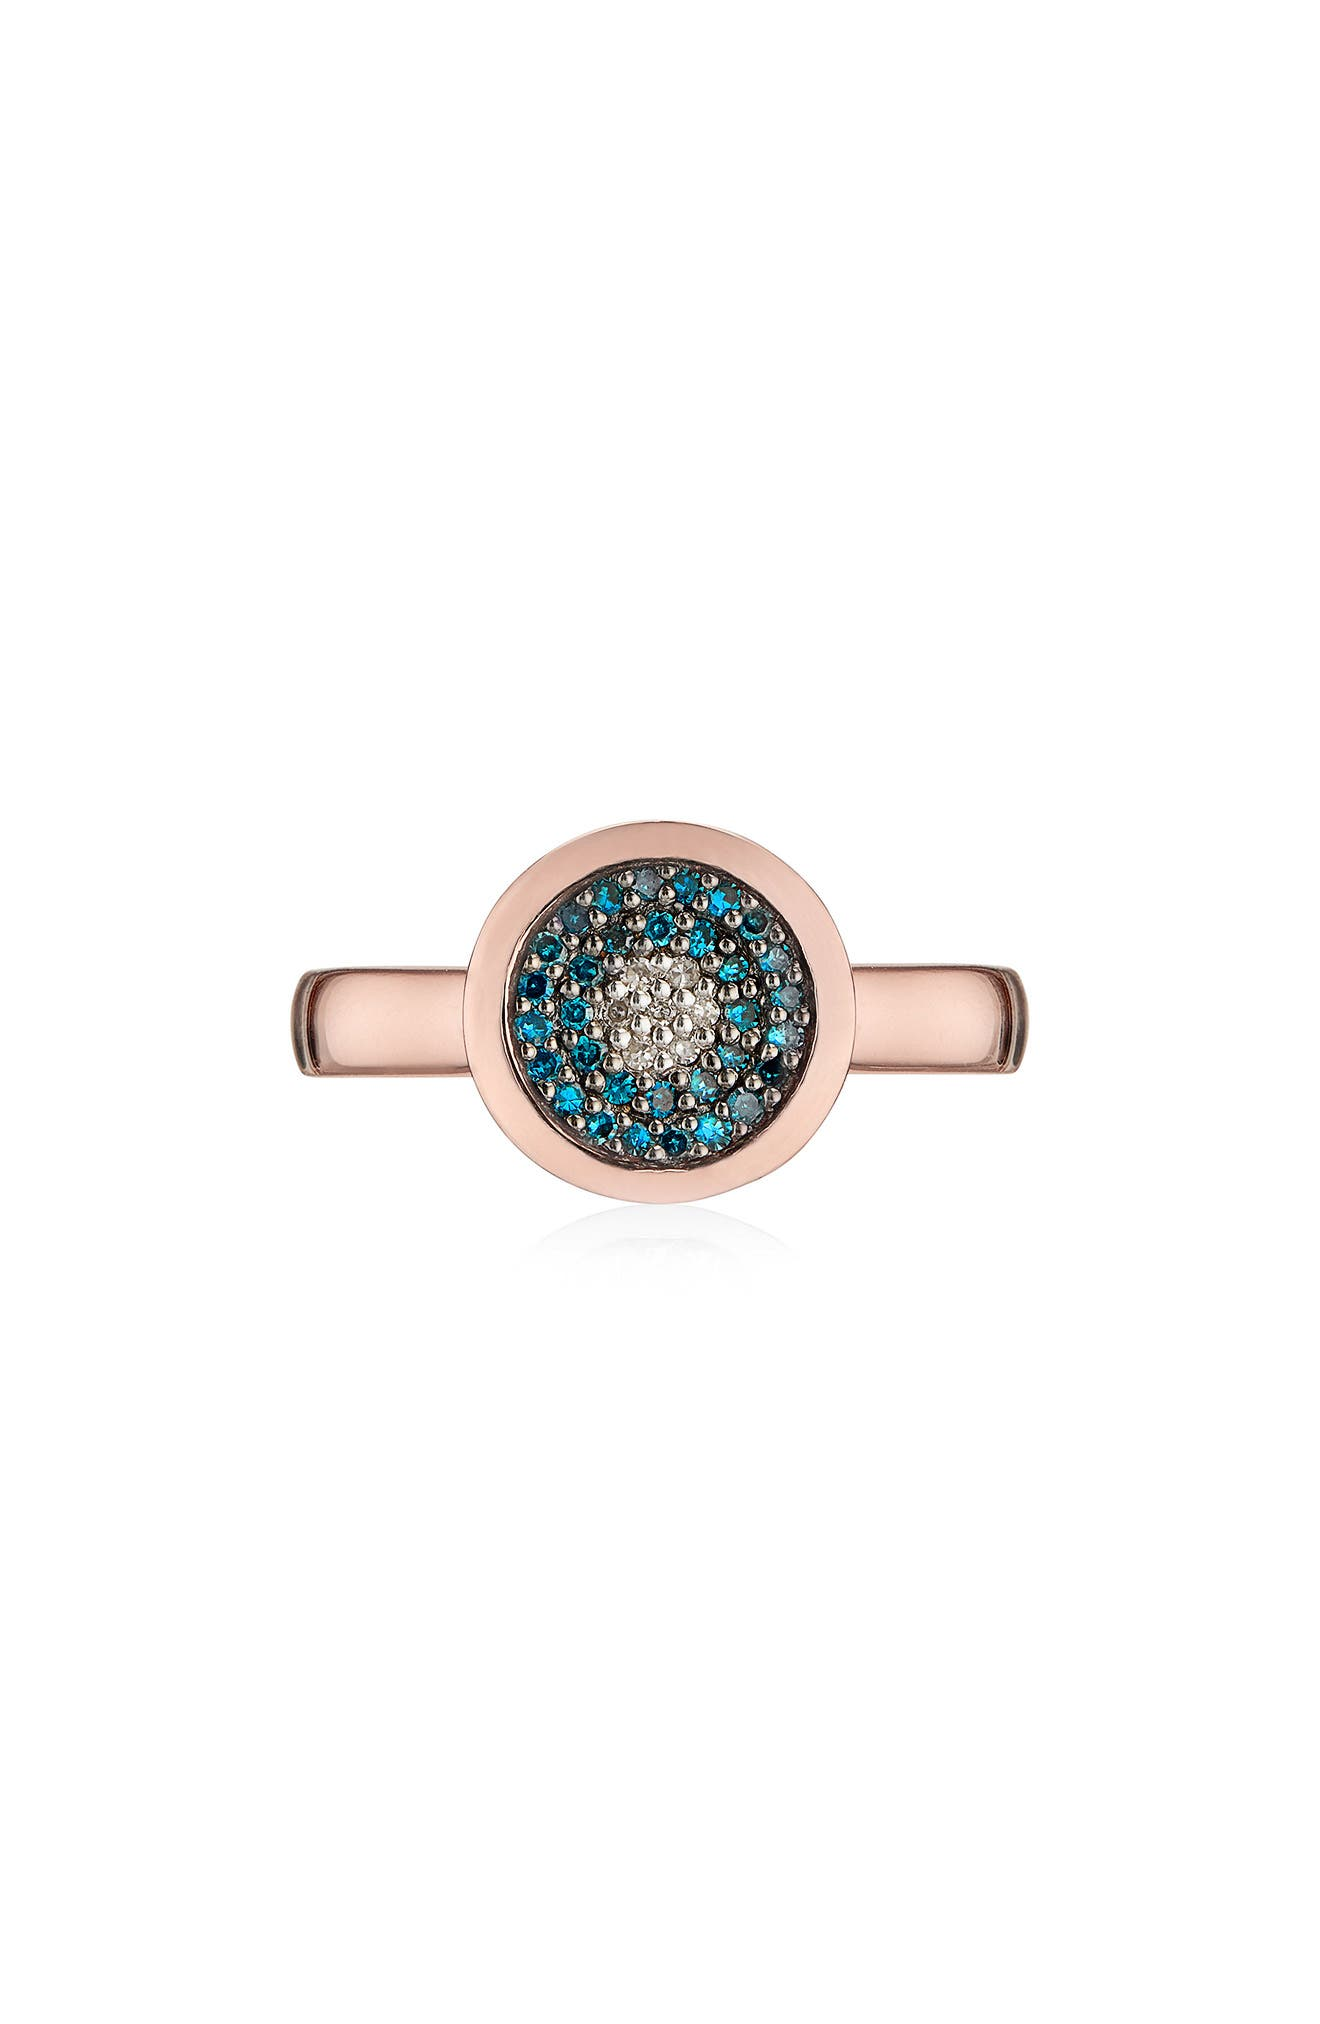 MONICA VINADER,                             Evil Eye Diamond Ring,                             Main thumbnail 1, color,                             ROSE GOLD/ BLUE DIAMOND